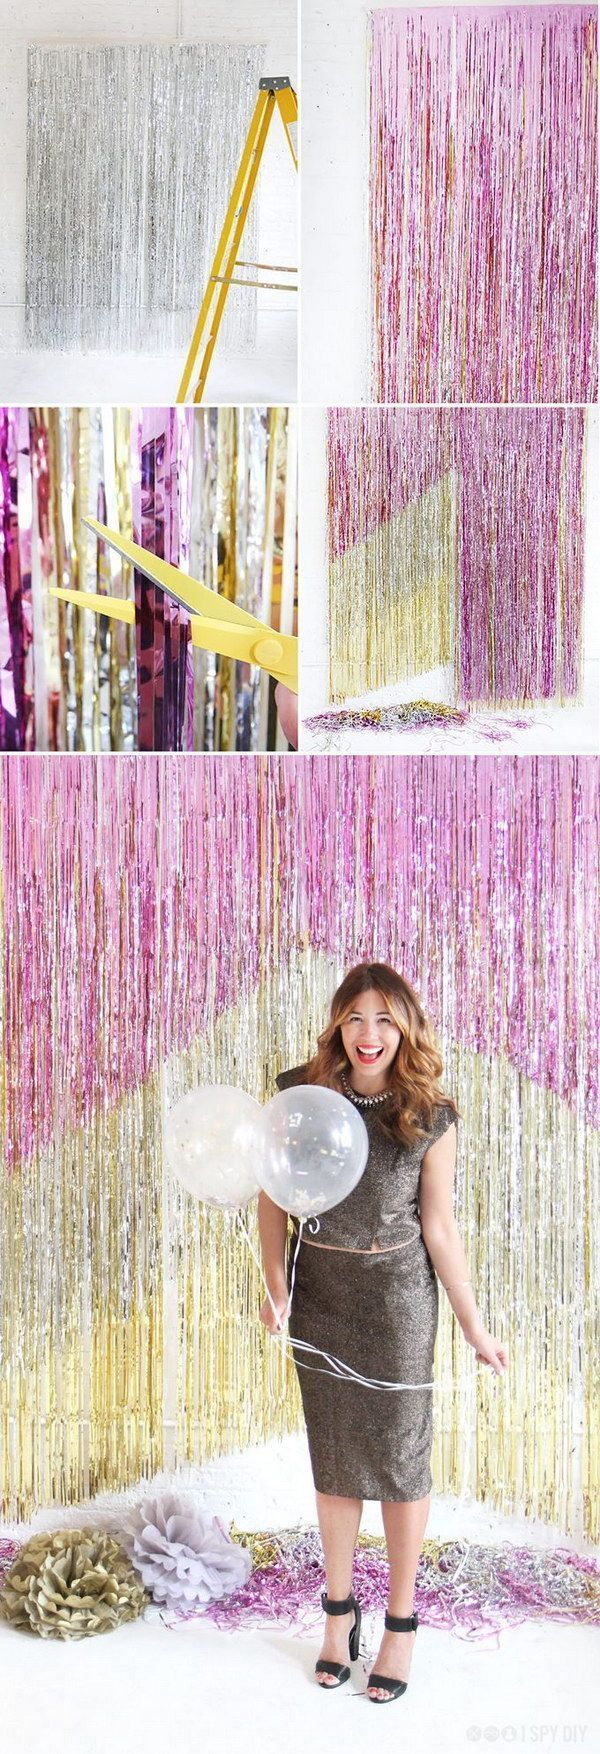 52 Awesome New Year Party Ideas With Many DIY Tutorials - New Year Decor